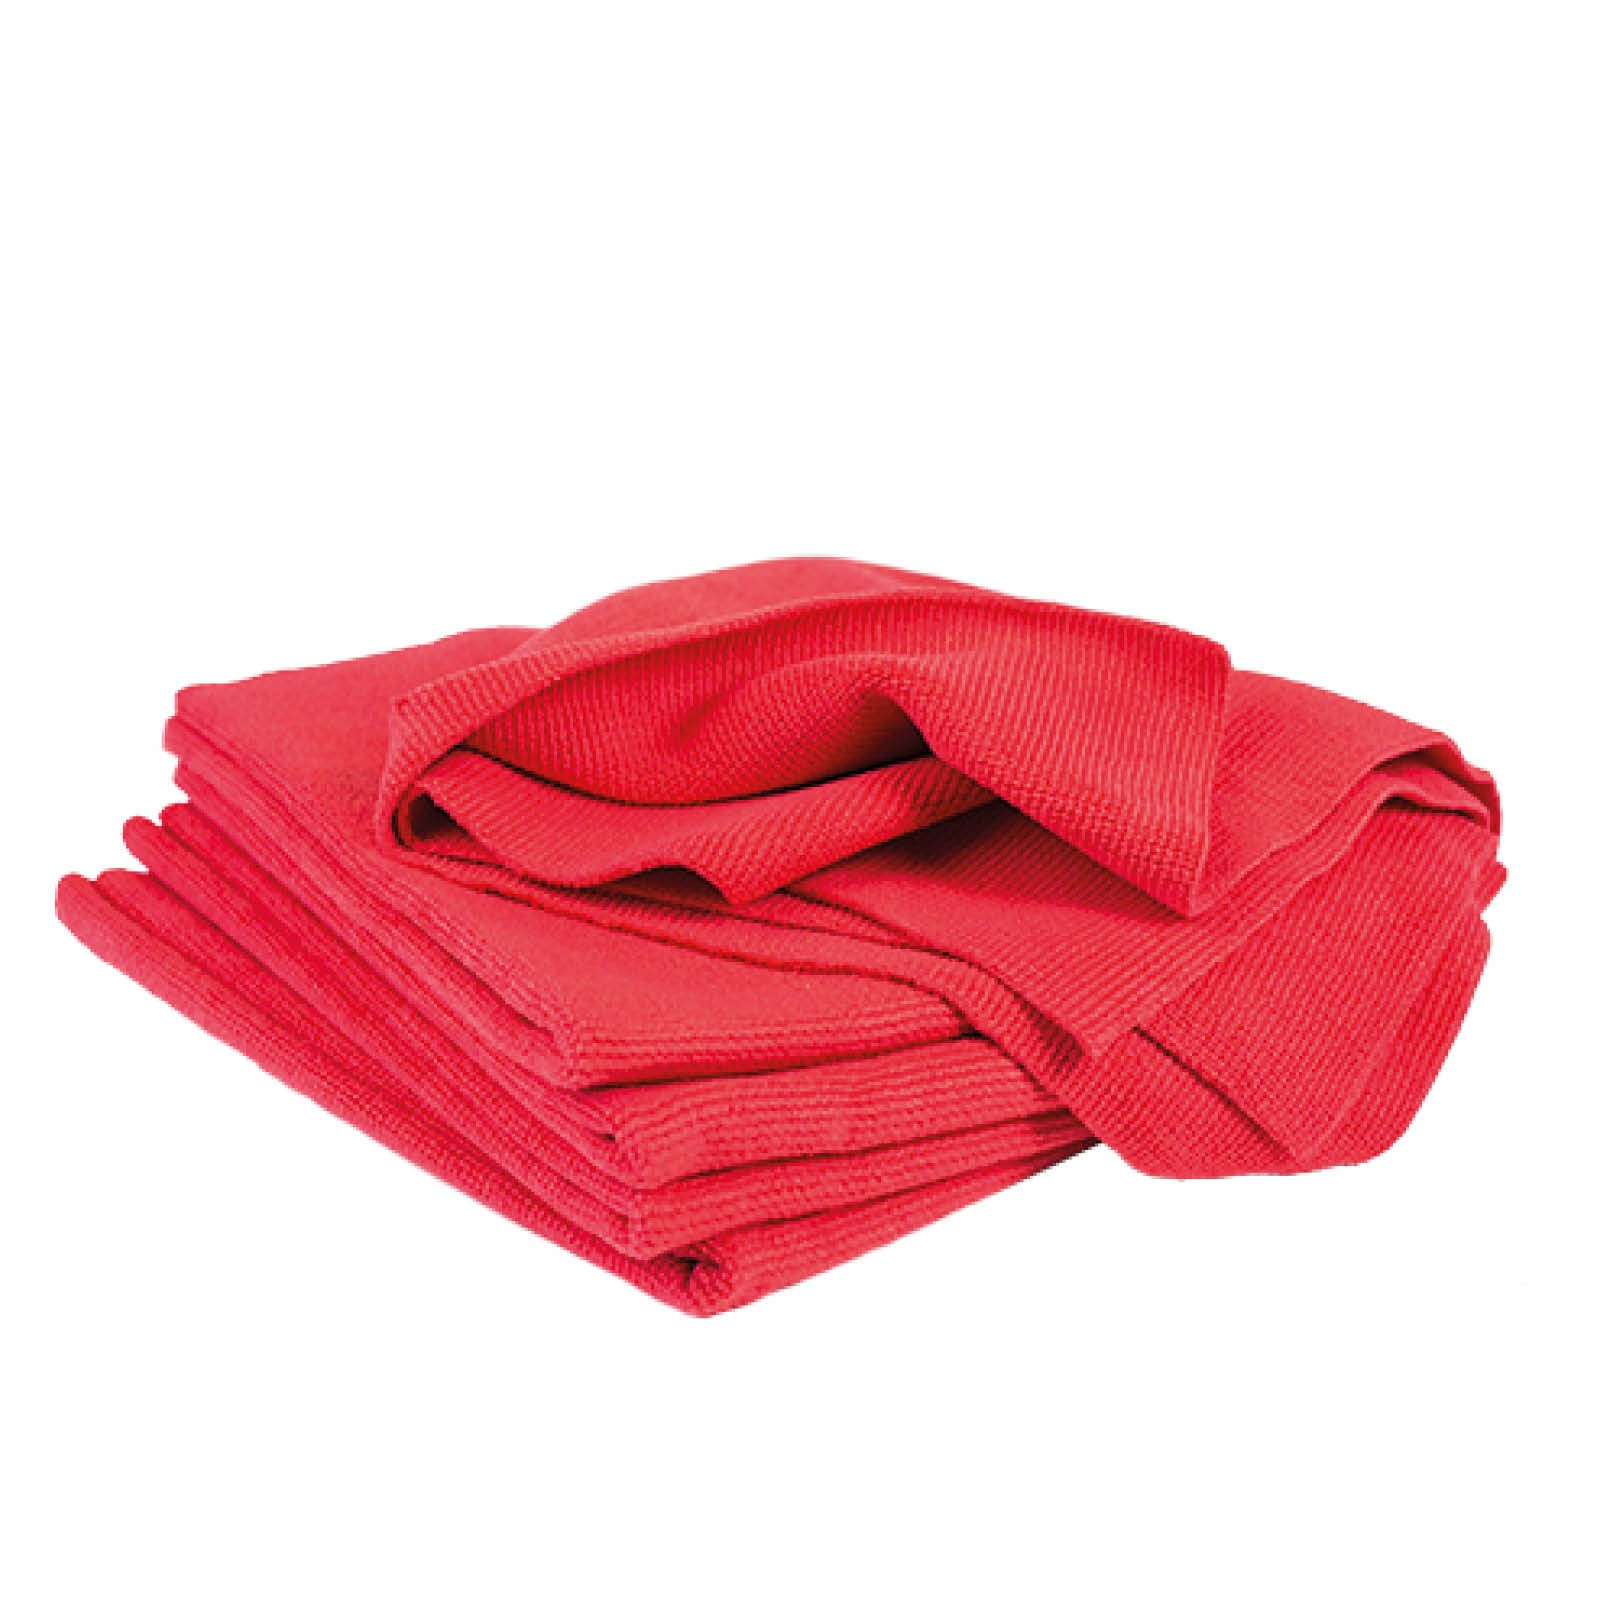 Microfiber Ultra-Soft Cloths - Red